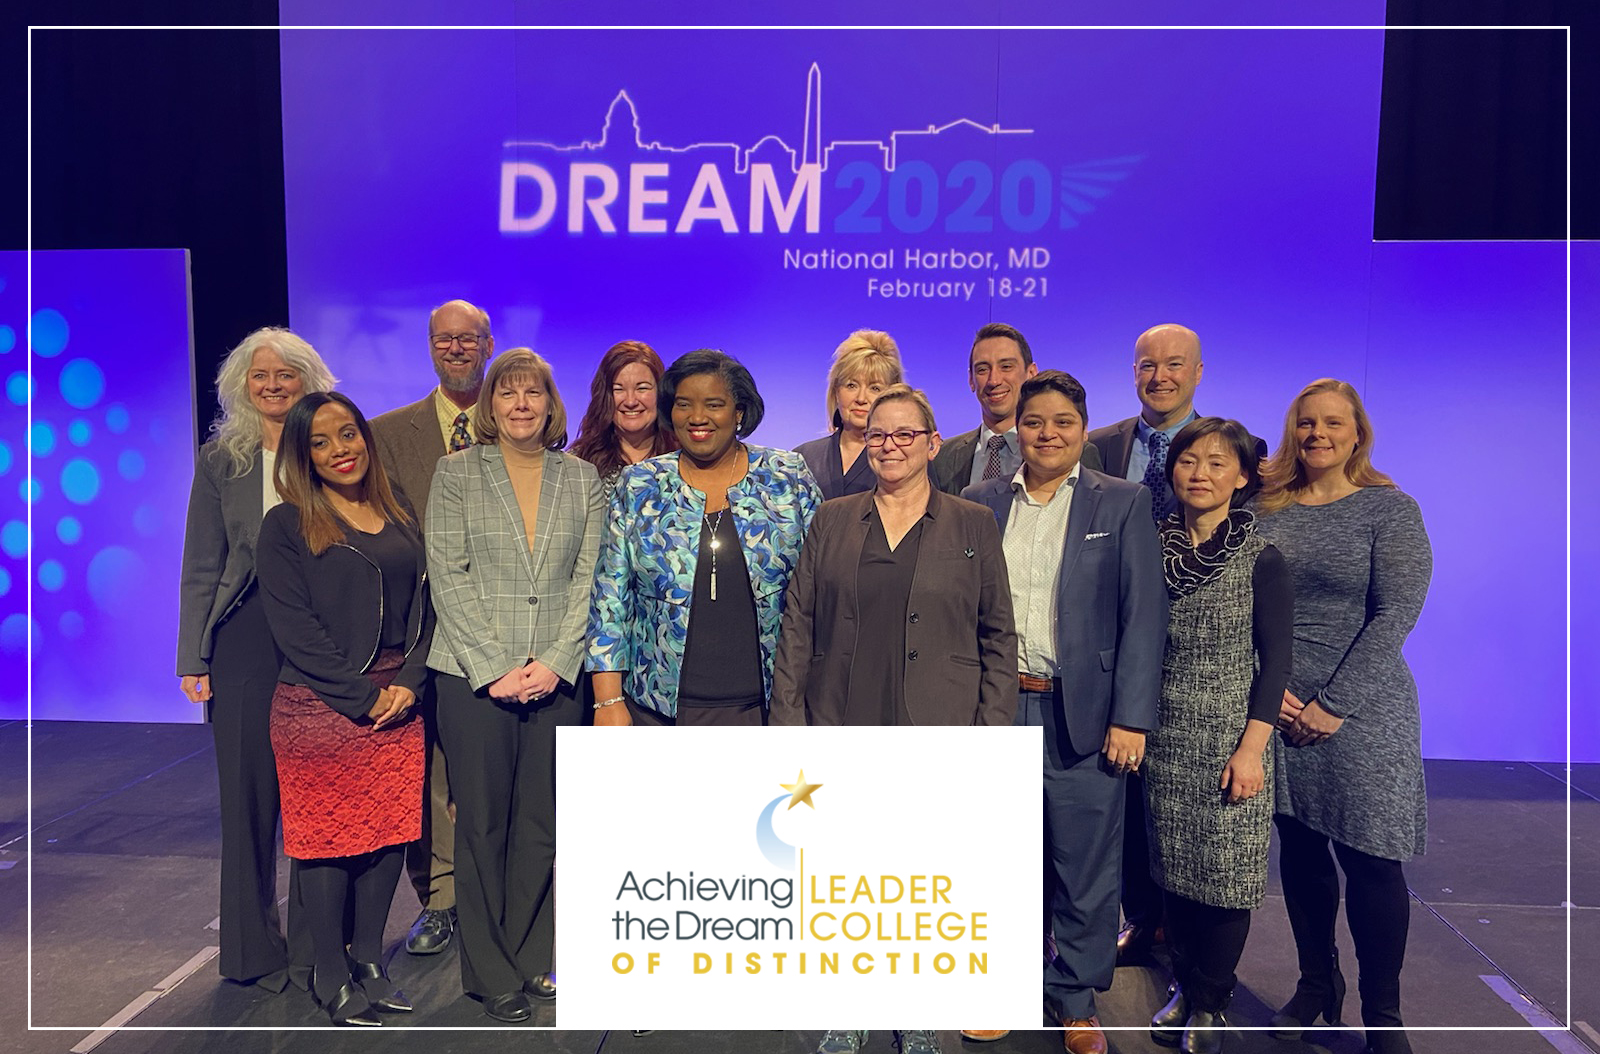 Harper College leaders at the Achieving the Dream conference